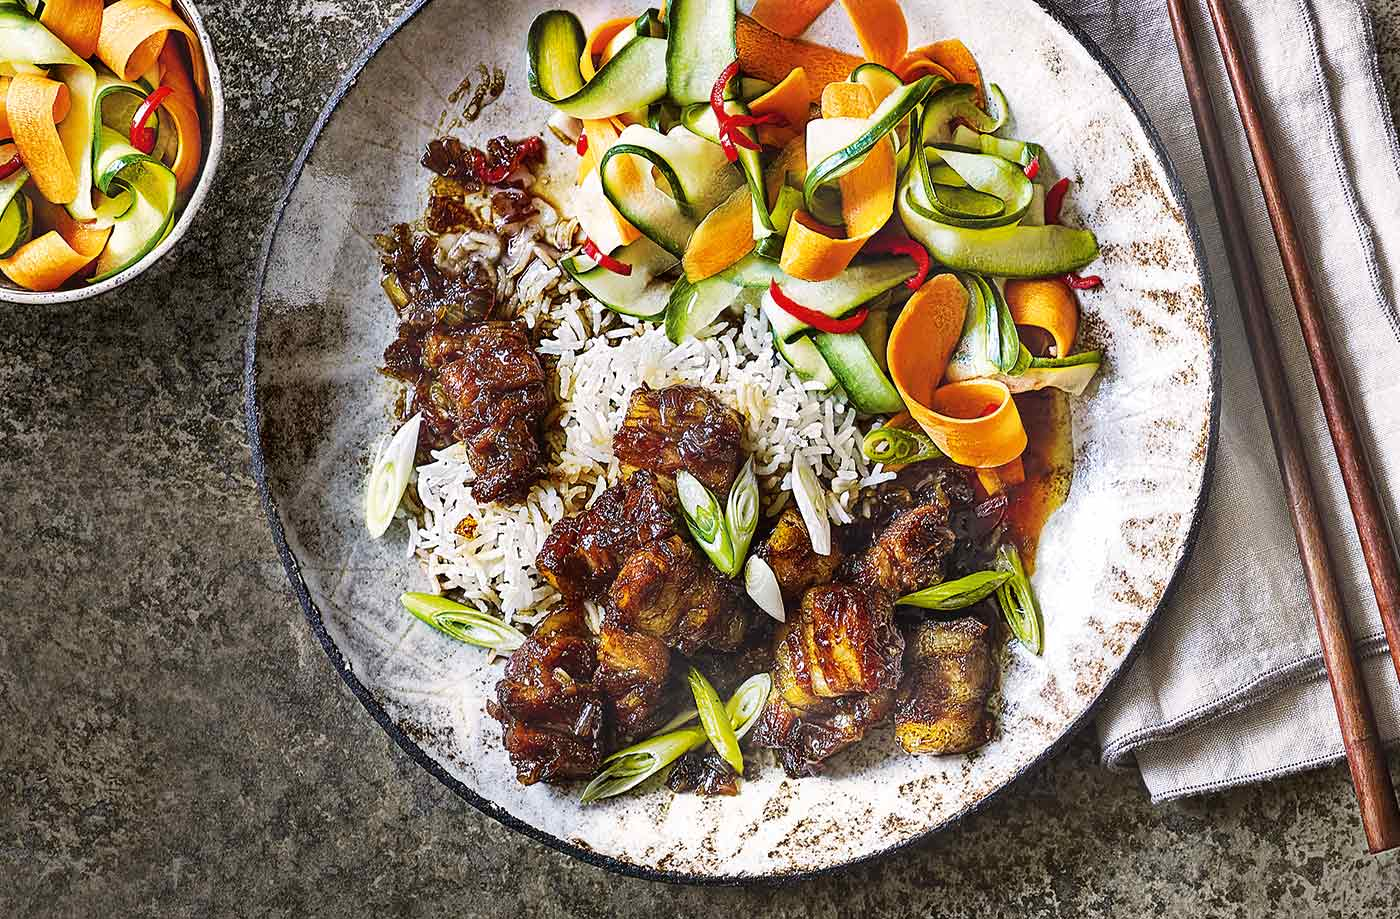 Vietnamese caramel pork with pickled veg recipe